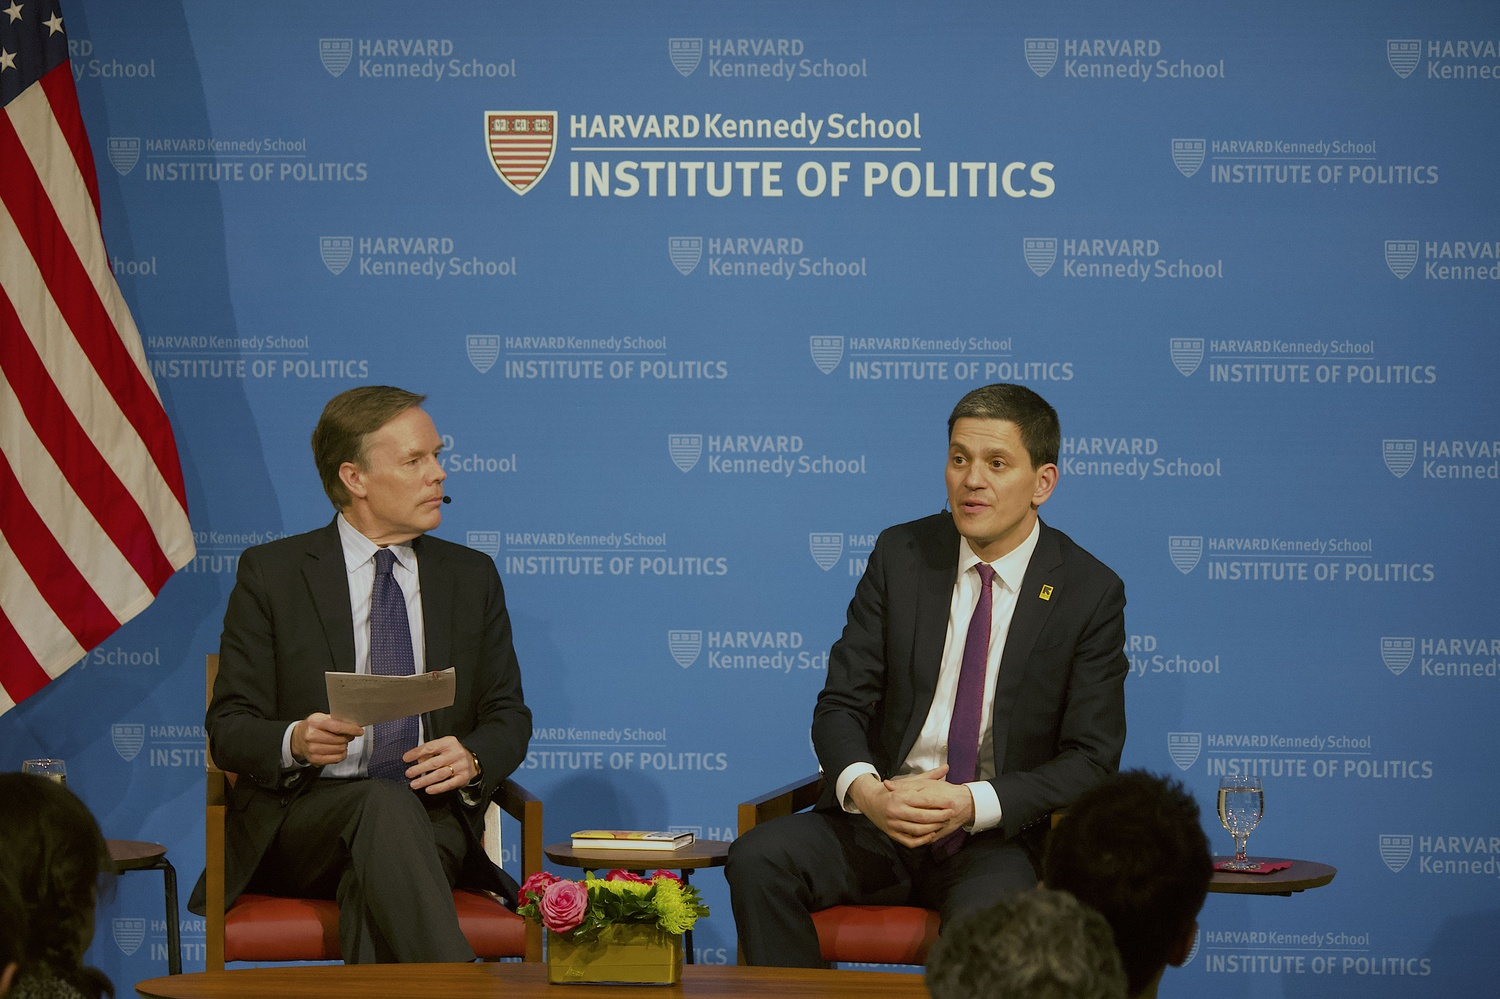 David Miliband (right) spoke Thursday evening at the Institute of Politics in HKS with moderator Nicholas Burns (left) and the audience.